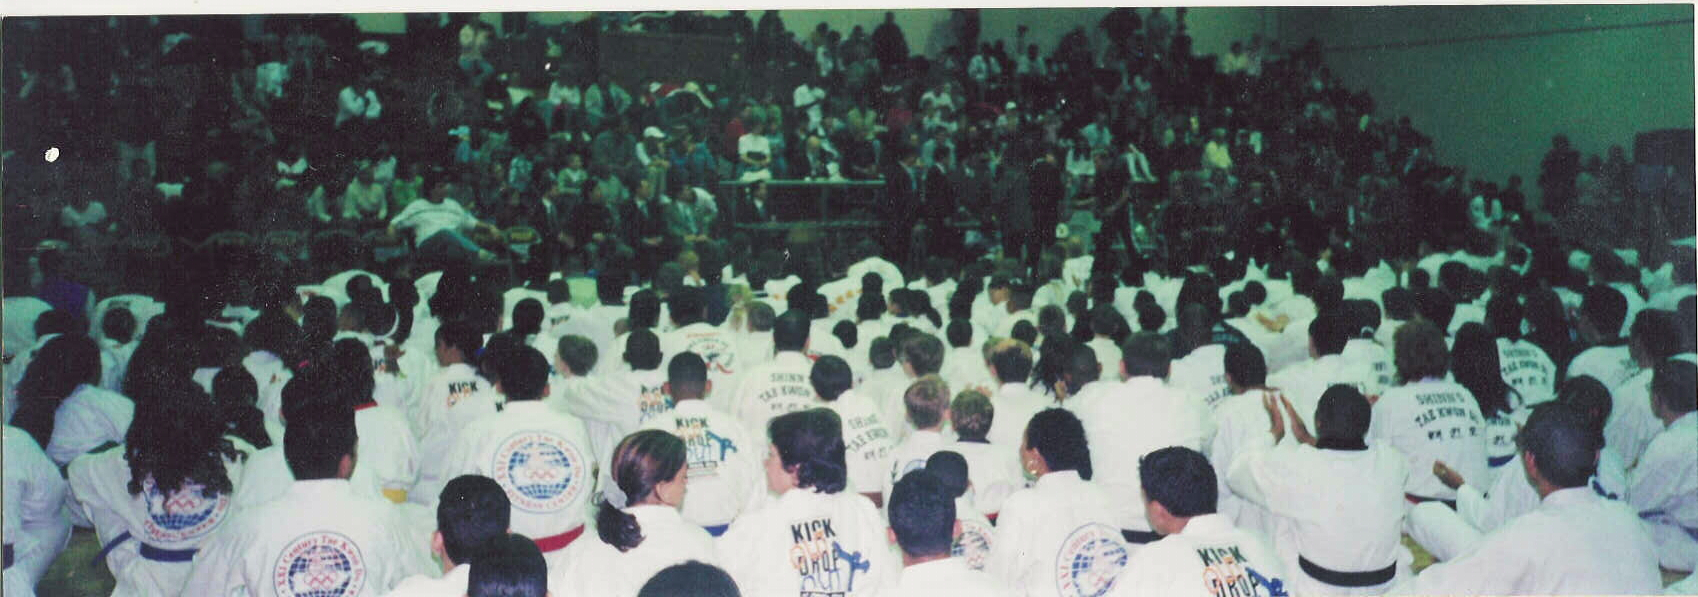 "March 3-4, 2002 Chung Do Kwan International Championship Every year Grandmaster Sung Jae Park, 9th Dan, and President of Chung Do Kwan International Inc., hosts the Chung Do Kwan International Championship Tournament; with hundreds assembling from around the world to compete and demonstrate their martial arts skills. These tournaments are designed for all age groups, from 4 years up to adults. No one is left out of competing! This worldwide tournament is one that brings people of all age groups and ethnic backgrounds together, within the principles of good sportsmanship, skills, and the desire to attain their individual goals and objectives. Grandmaster Park provides this annual ""Tournament"", so all those attending will leave with more knowledge, understanding of martial arts competition, and the chance to be the ""best of the best"" in their chosen field of competition. Even those who don't place in a competition, still walk away from this annual event…a winner! Watch for news regarding the next upcoming Championship Tournament, which will be posted! We look forward to seeing you there!!!"